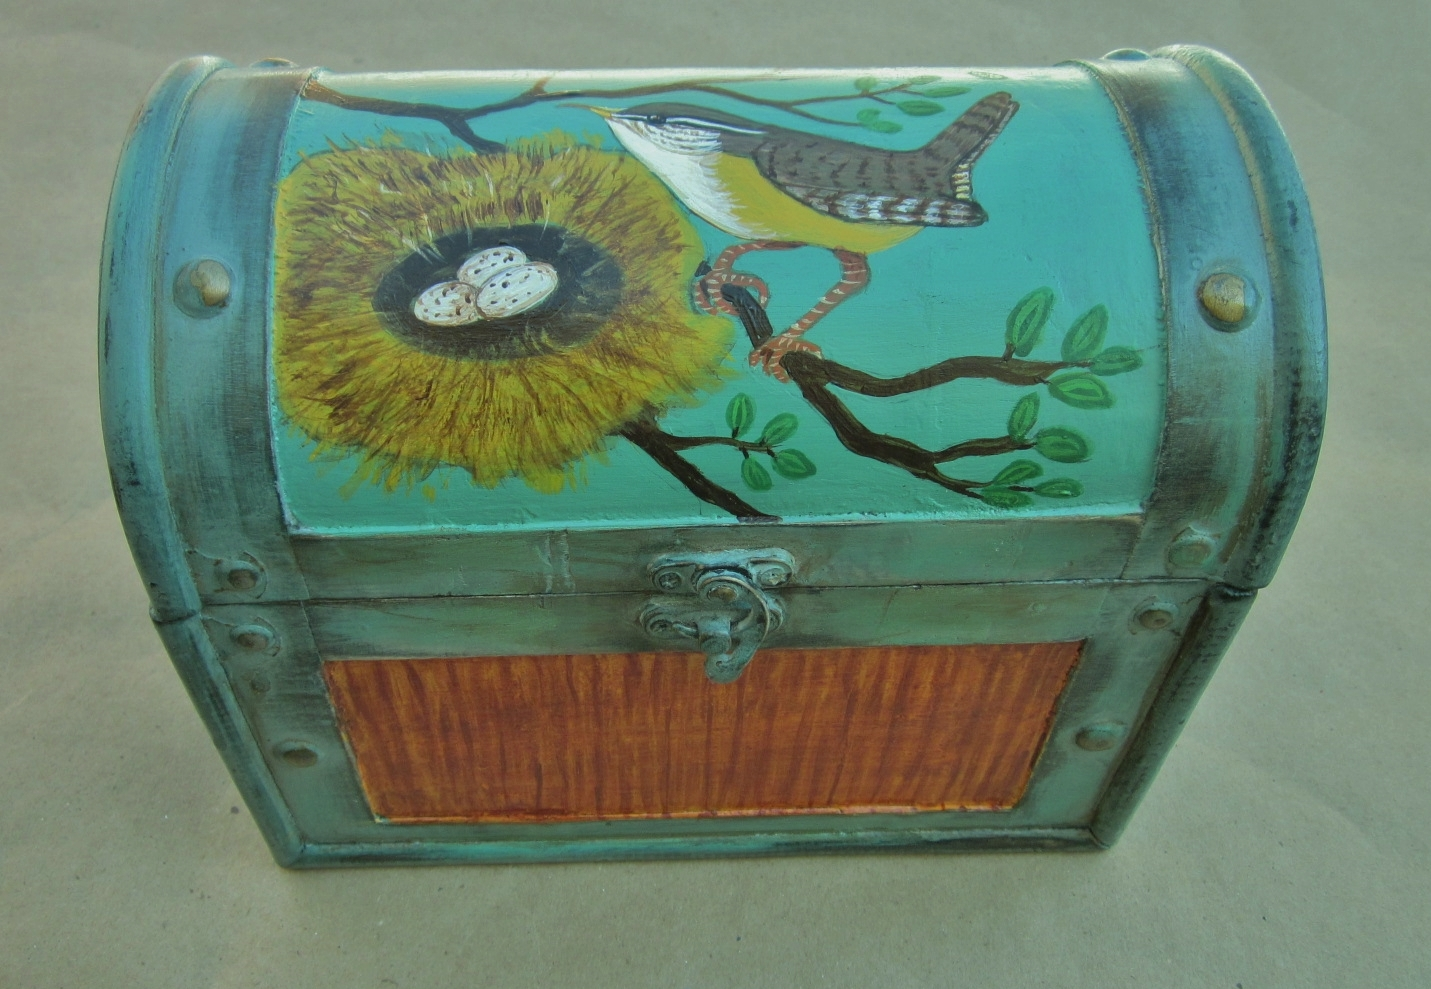 Carolina Wren Chest 8.7w x 7 h x 5.4 d